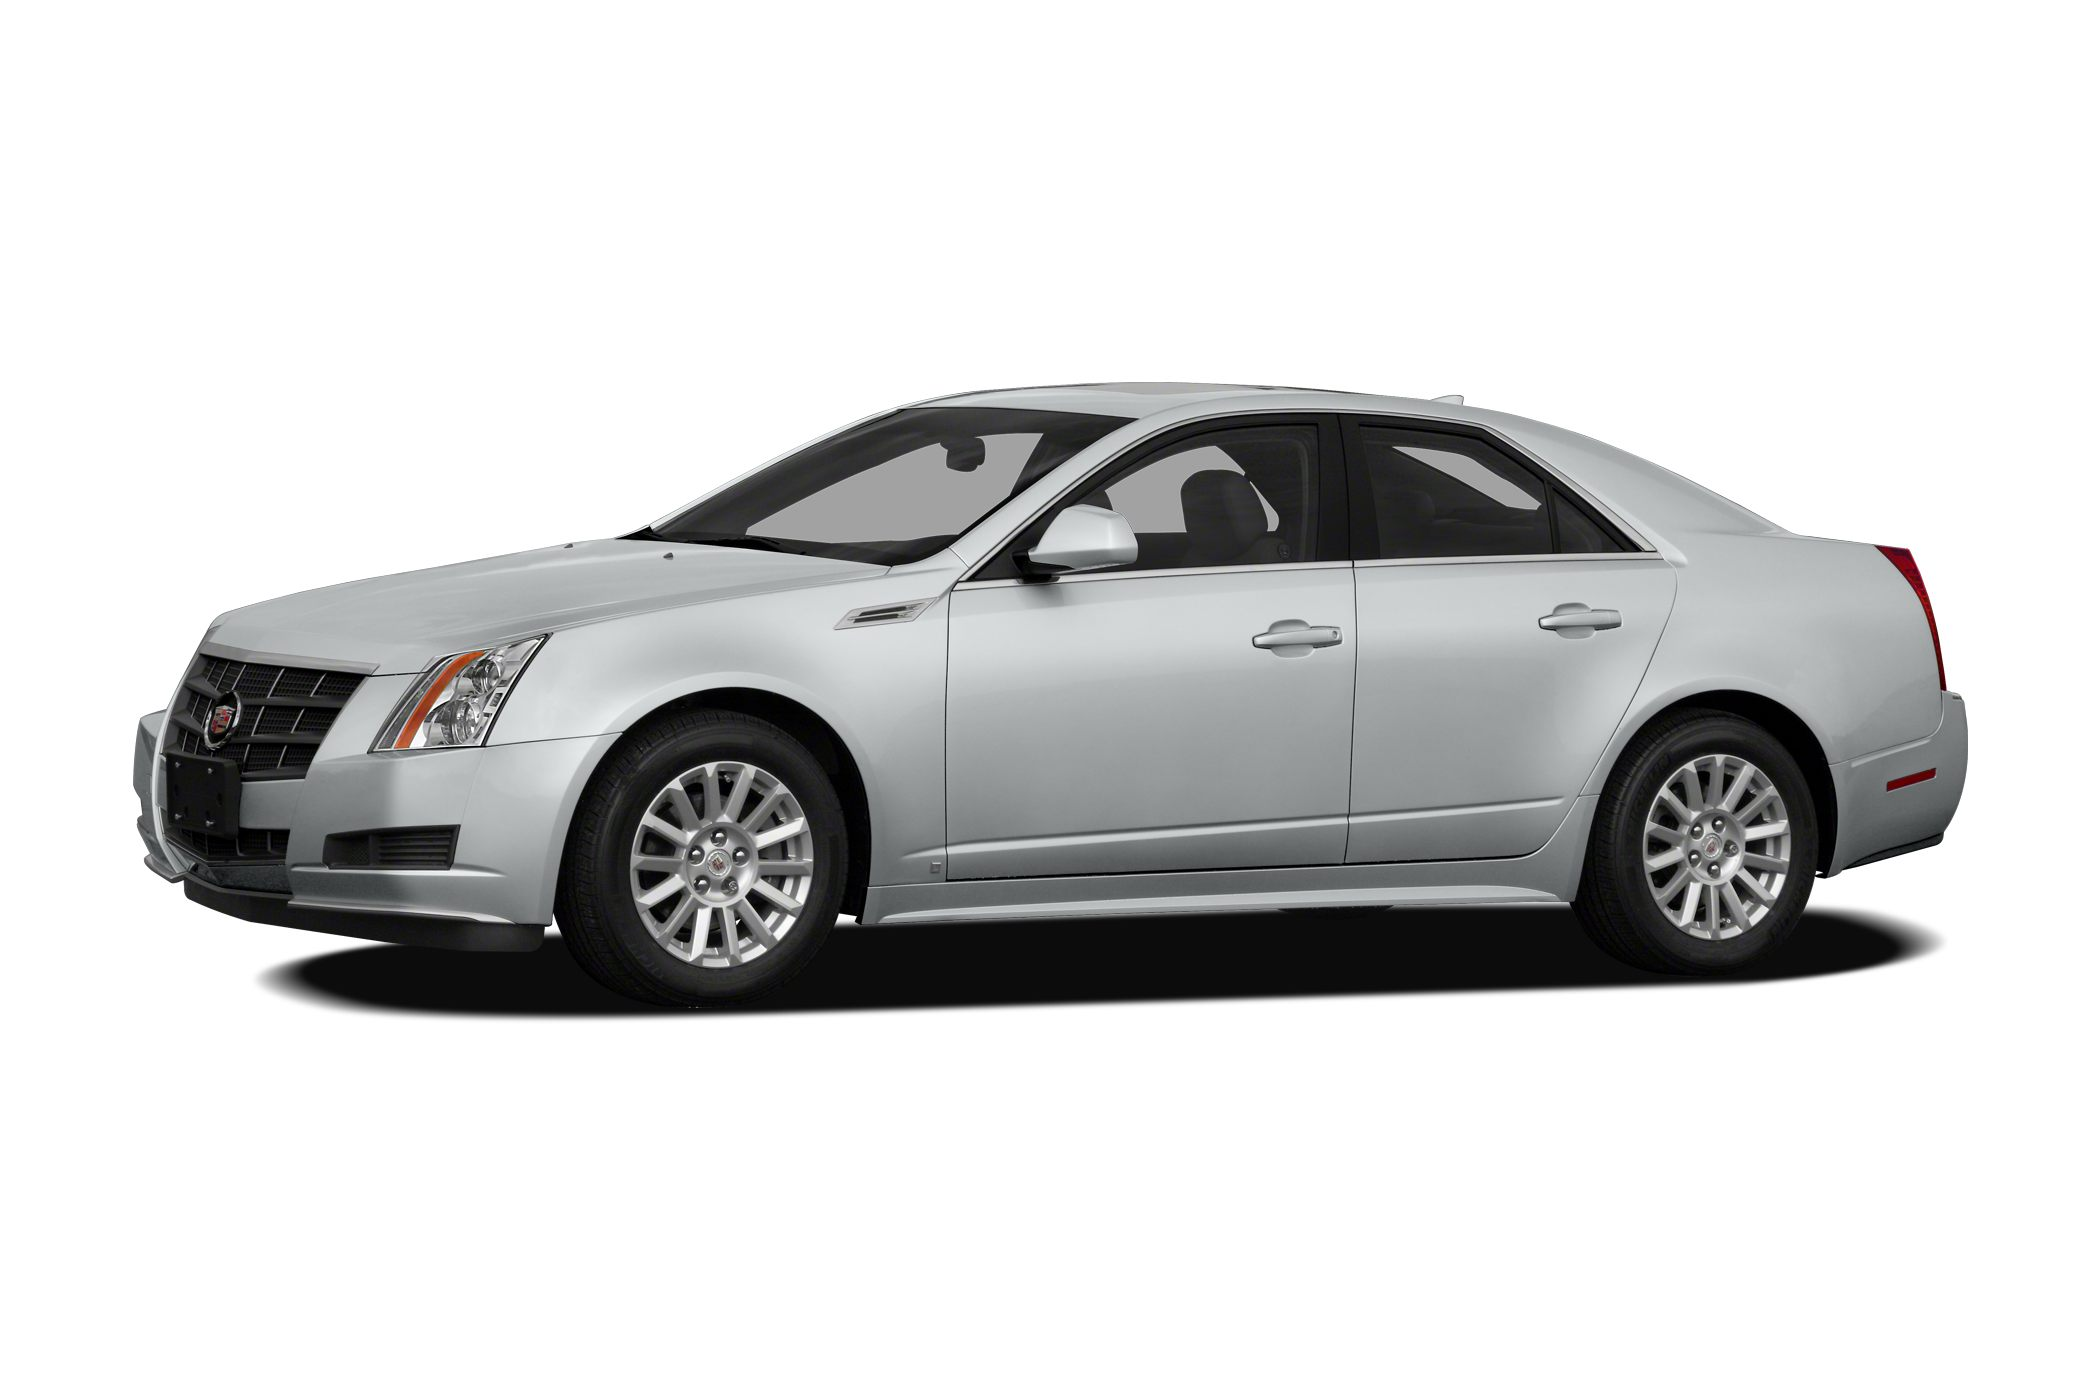 2010 Cadillac CTS Sedan for sale in Ellwood City for $22,495 with 48,207 miles